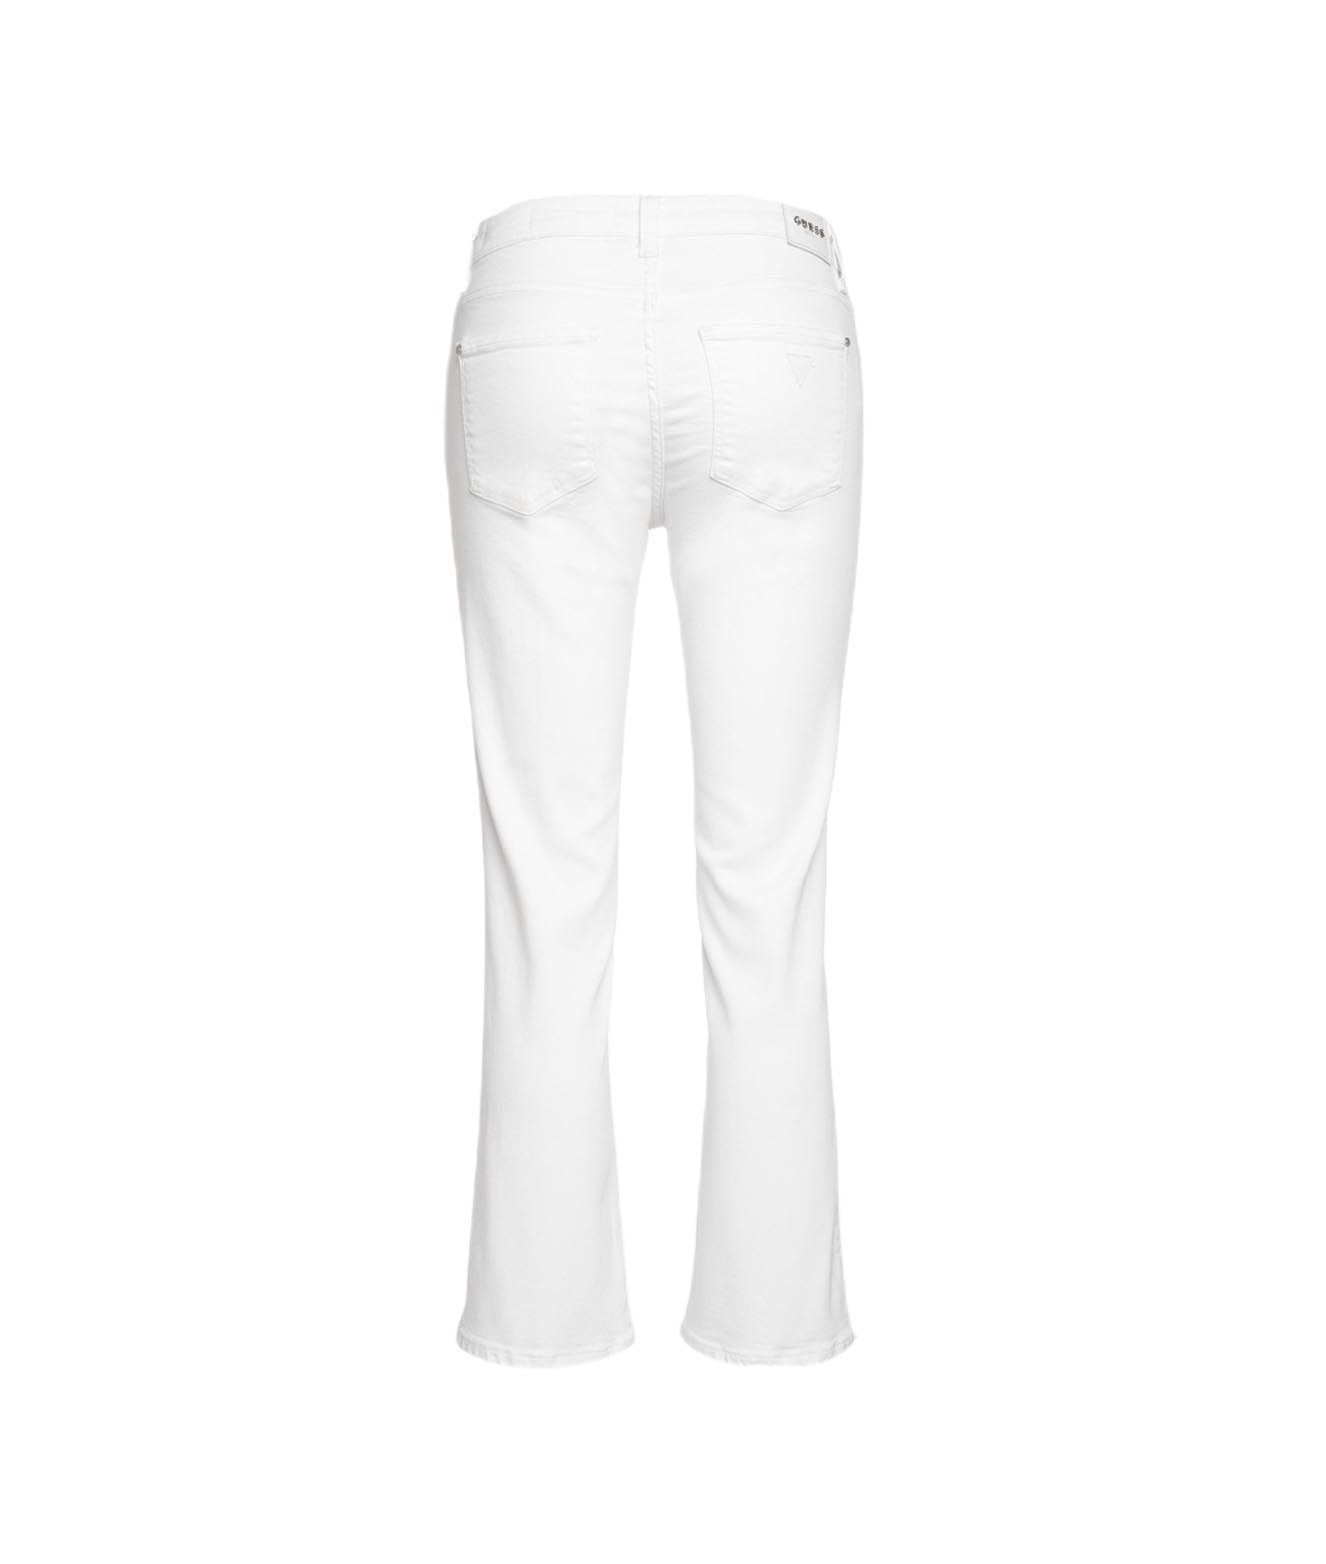 GUESS Jeans GUESS WOMEN'S WHITE OTHER MATERIALS JEANS